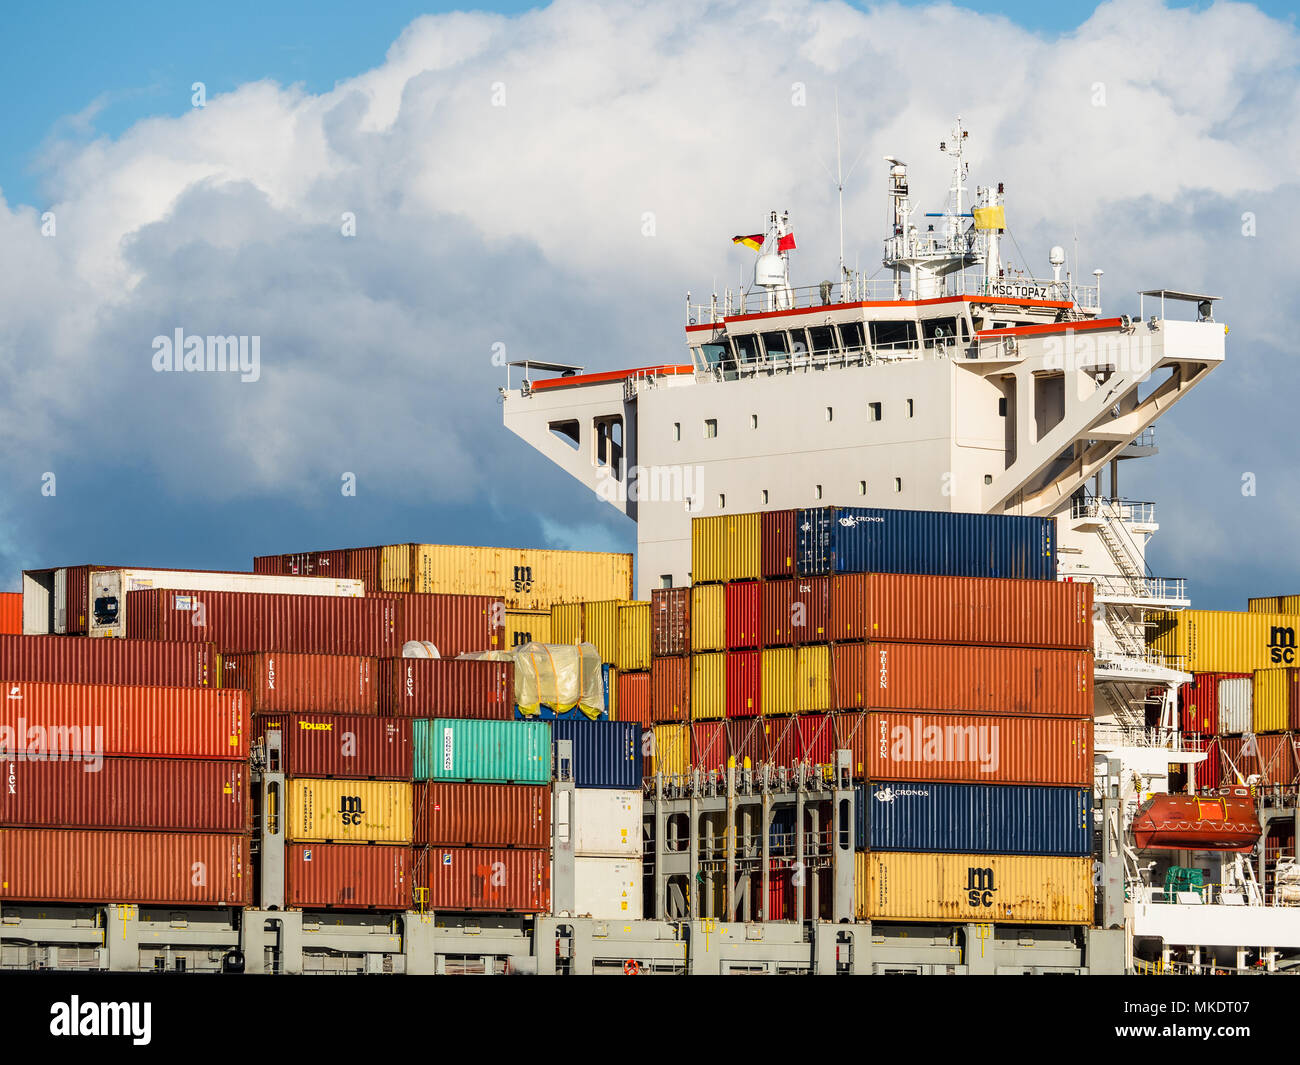 Global Trade World Trade International Trade - containers arrive in Hamburg Port, one of Europe's largest ports - Stock Image